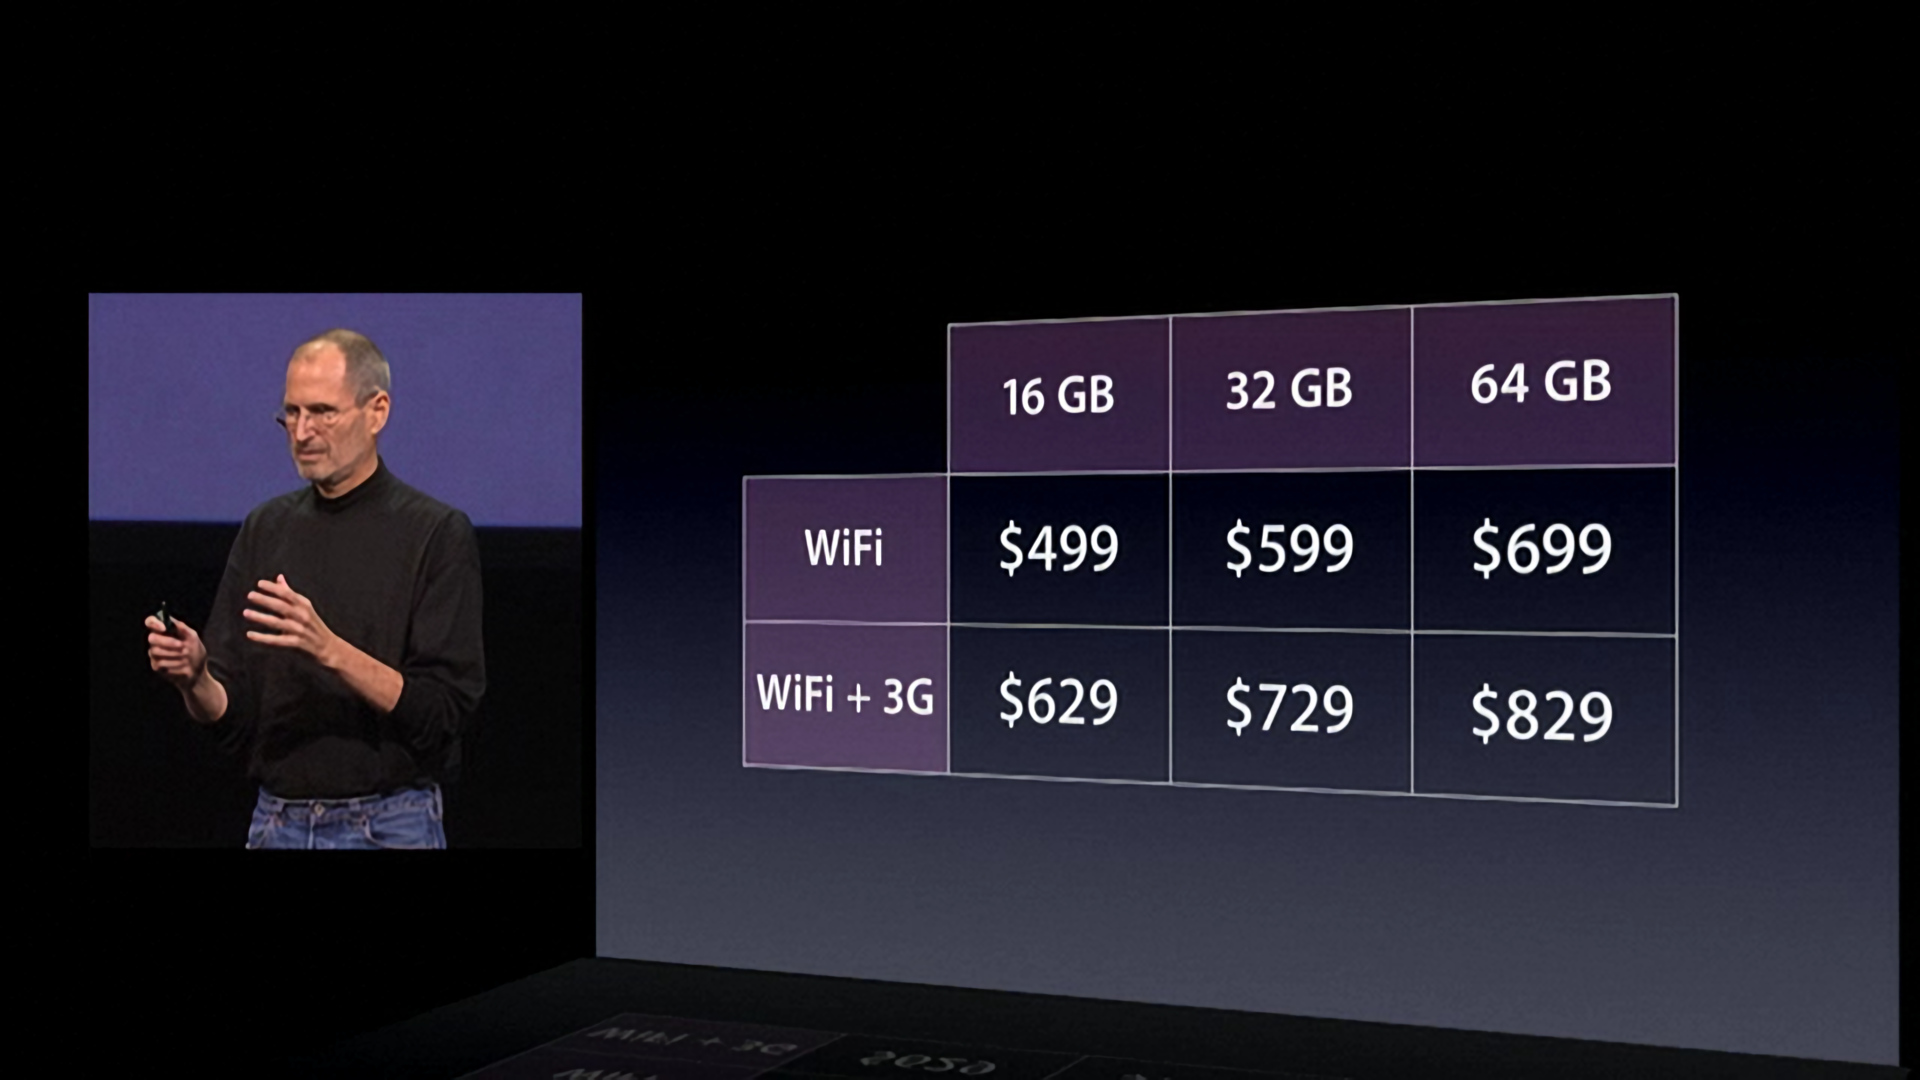 Apple shocked the crowd announcing a $499 starting price for the iPad.